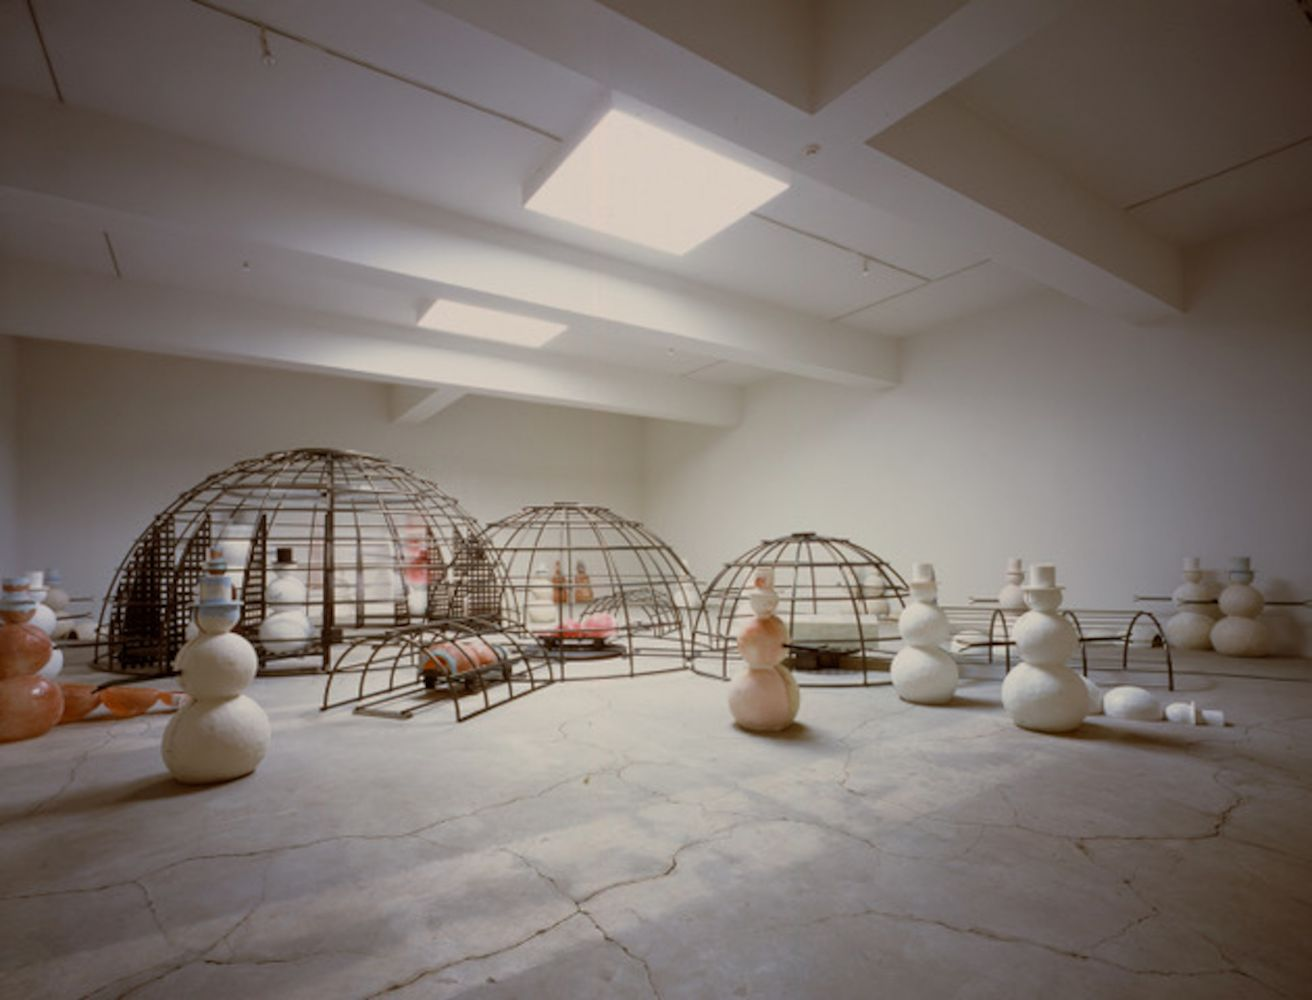 Installation shot of Dennis Oppenheim's cluster of white and pink snowmen alongside caged steel igloos.